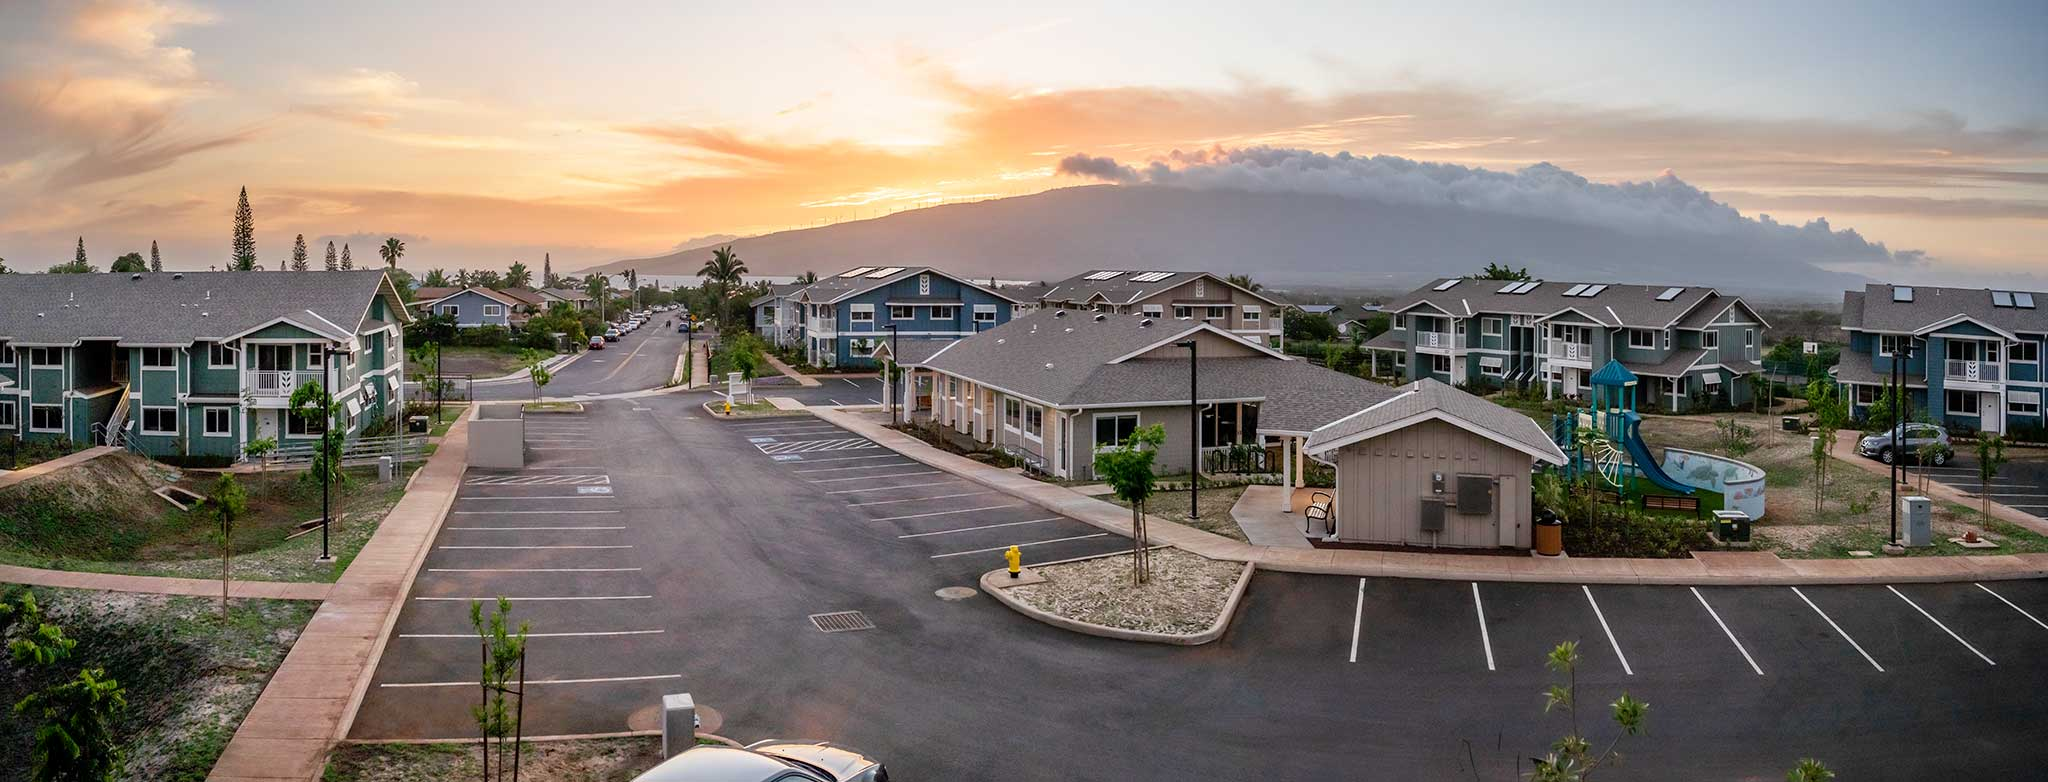 Kaiwahine Village Now Accepting Residents